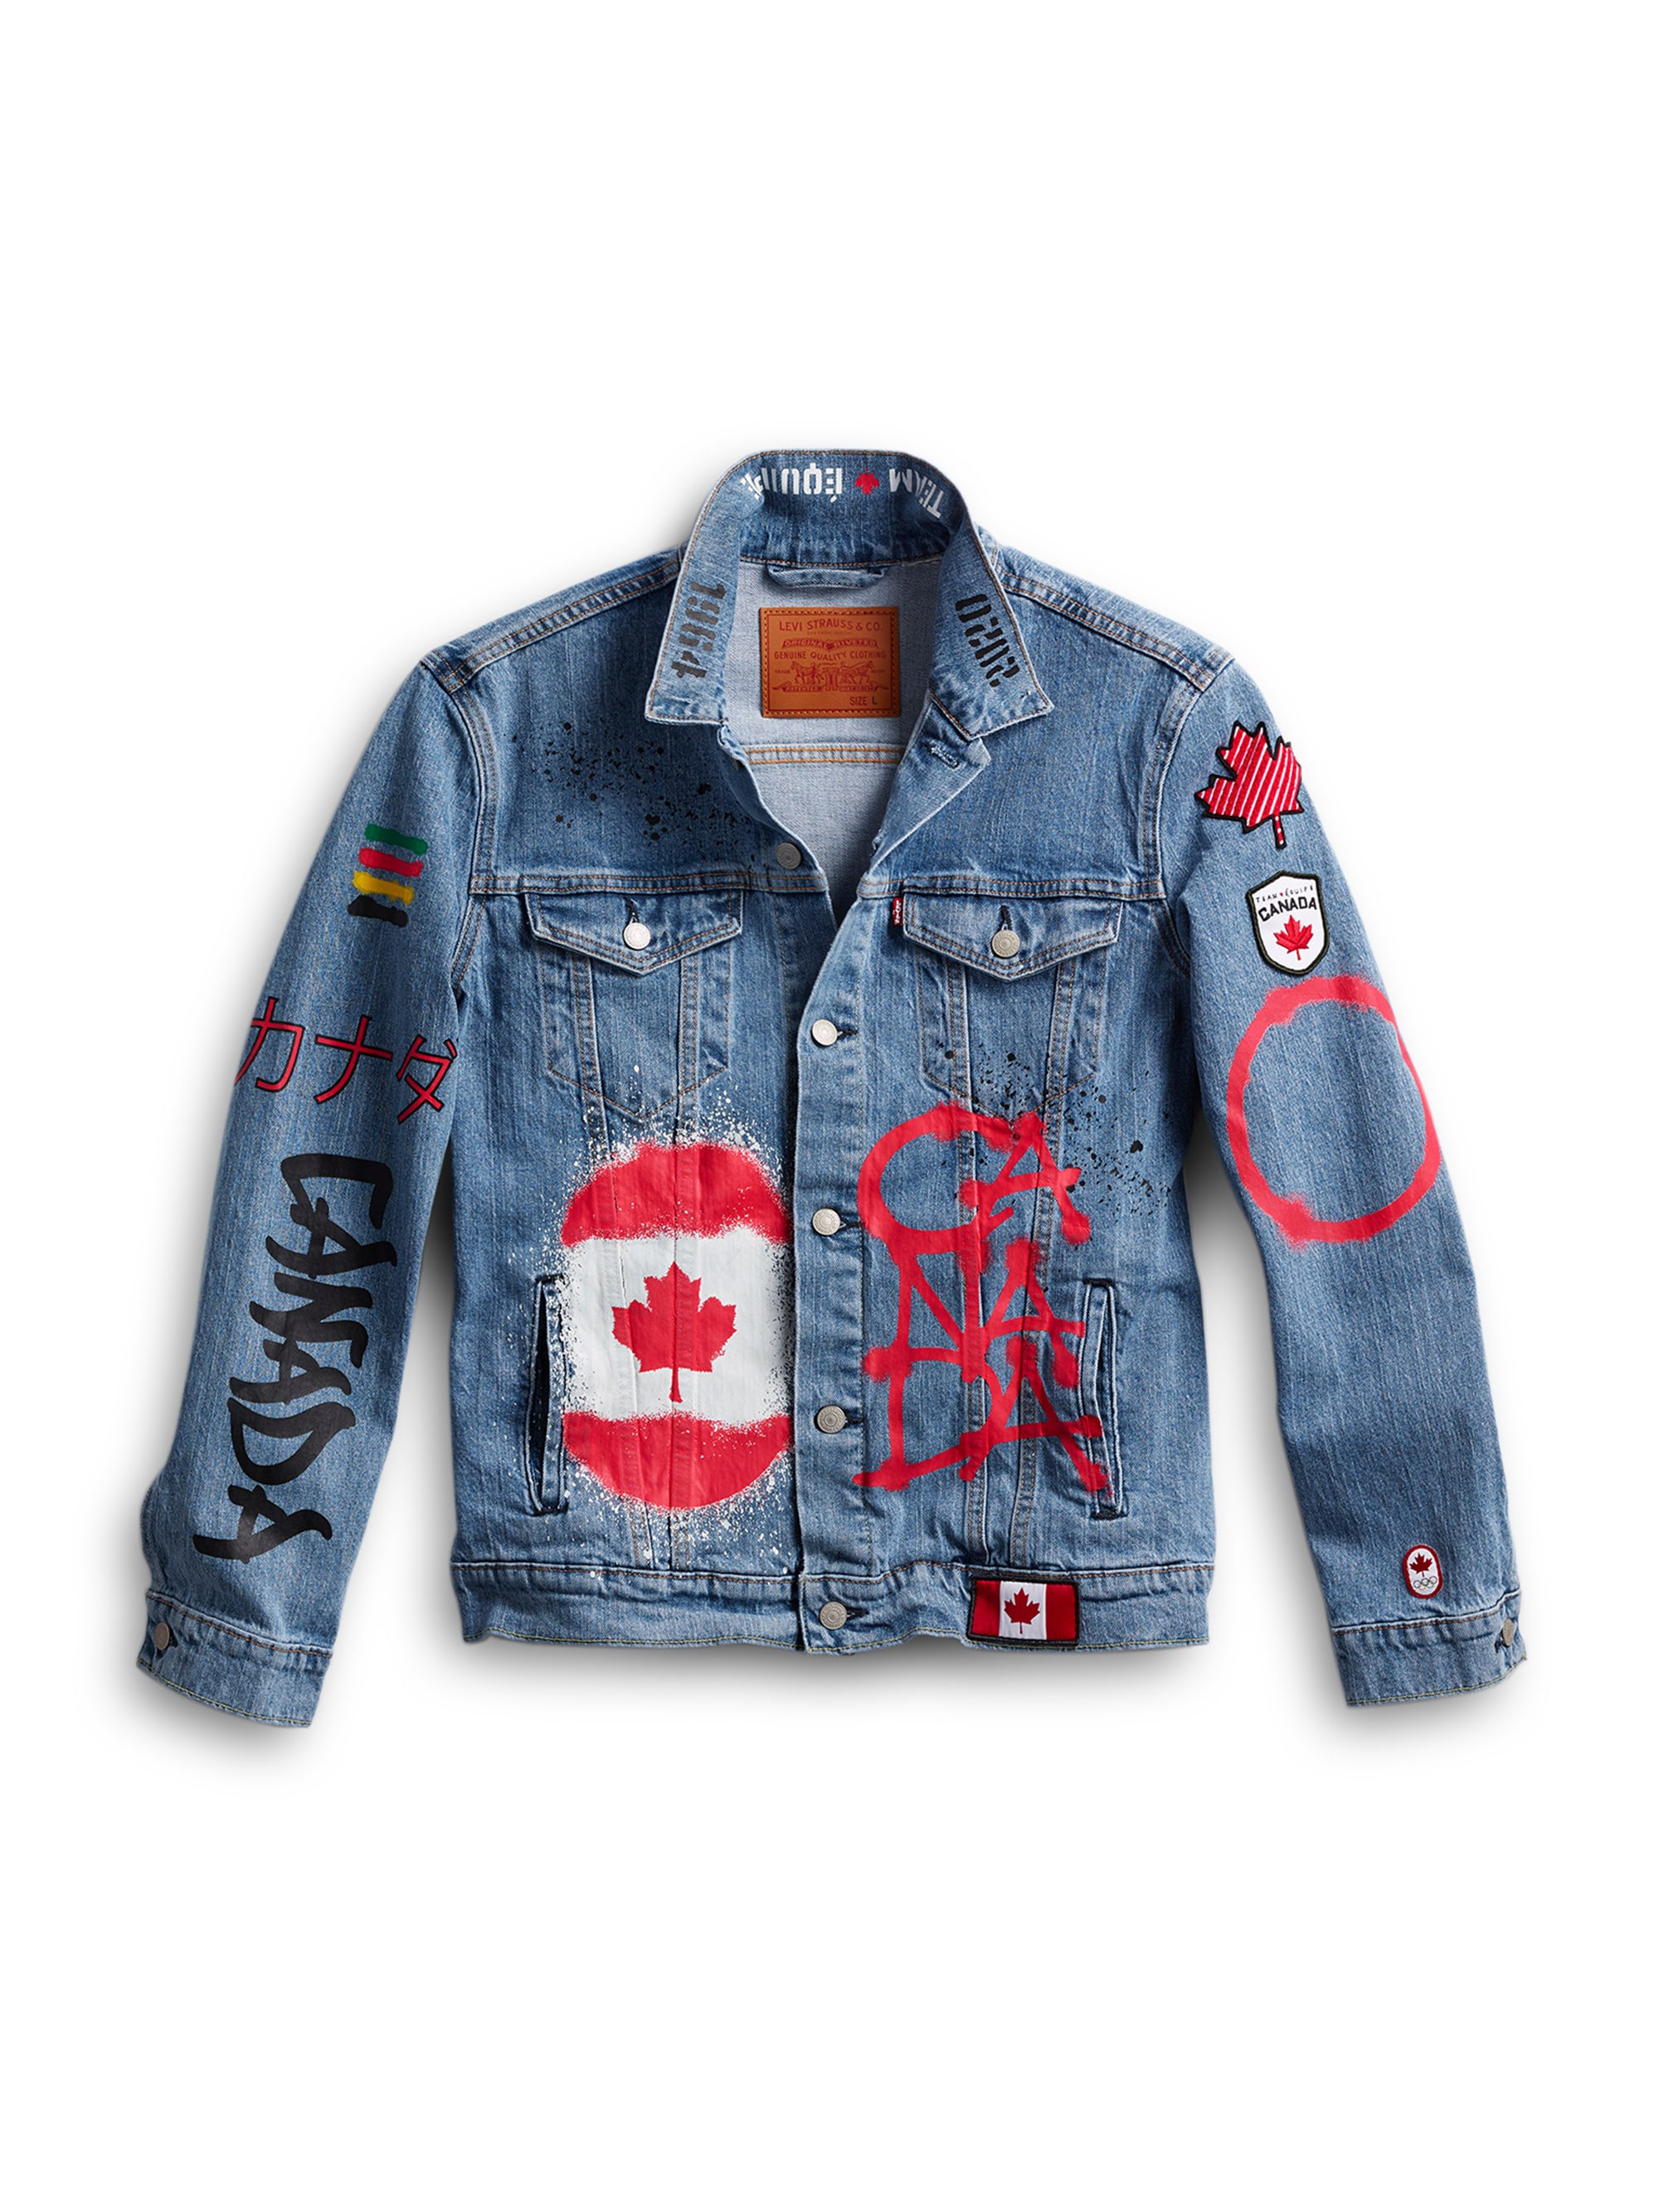 This image provided by Hudson's Bay shows Team Canada's denim jacket to be worn by athletes in the closing ceremony of the Tokyo Olympics. (AP)